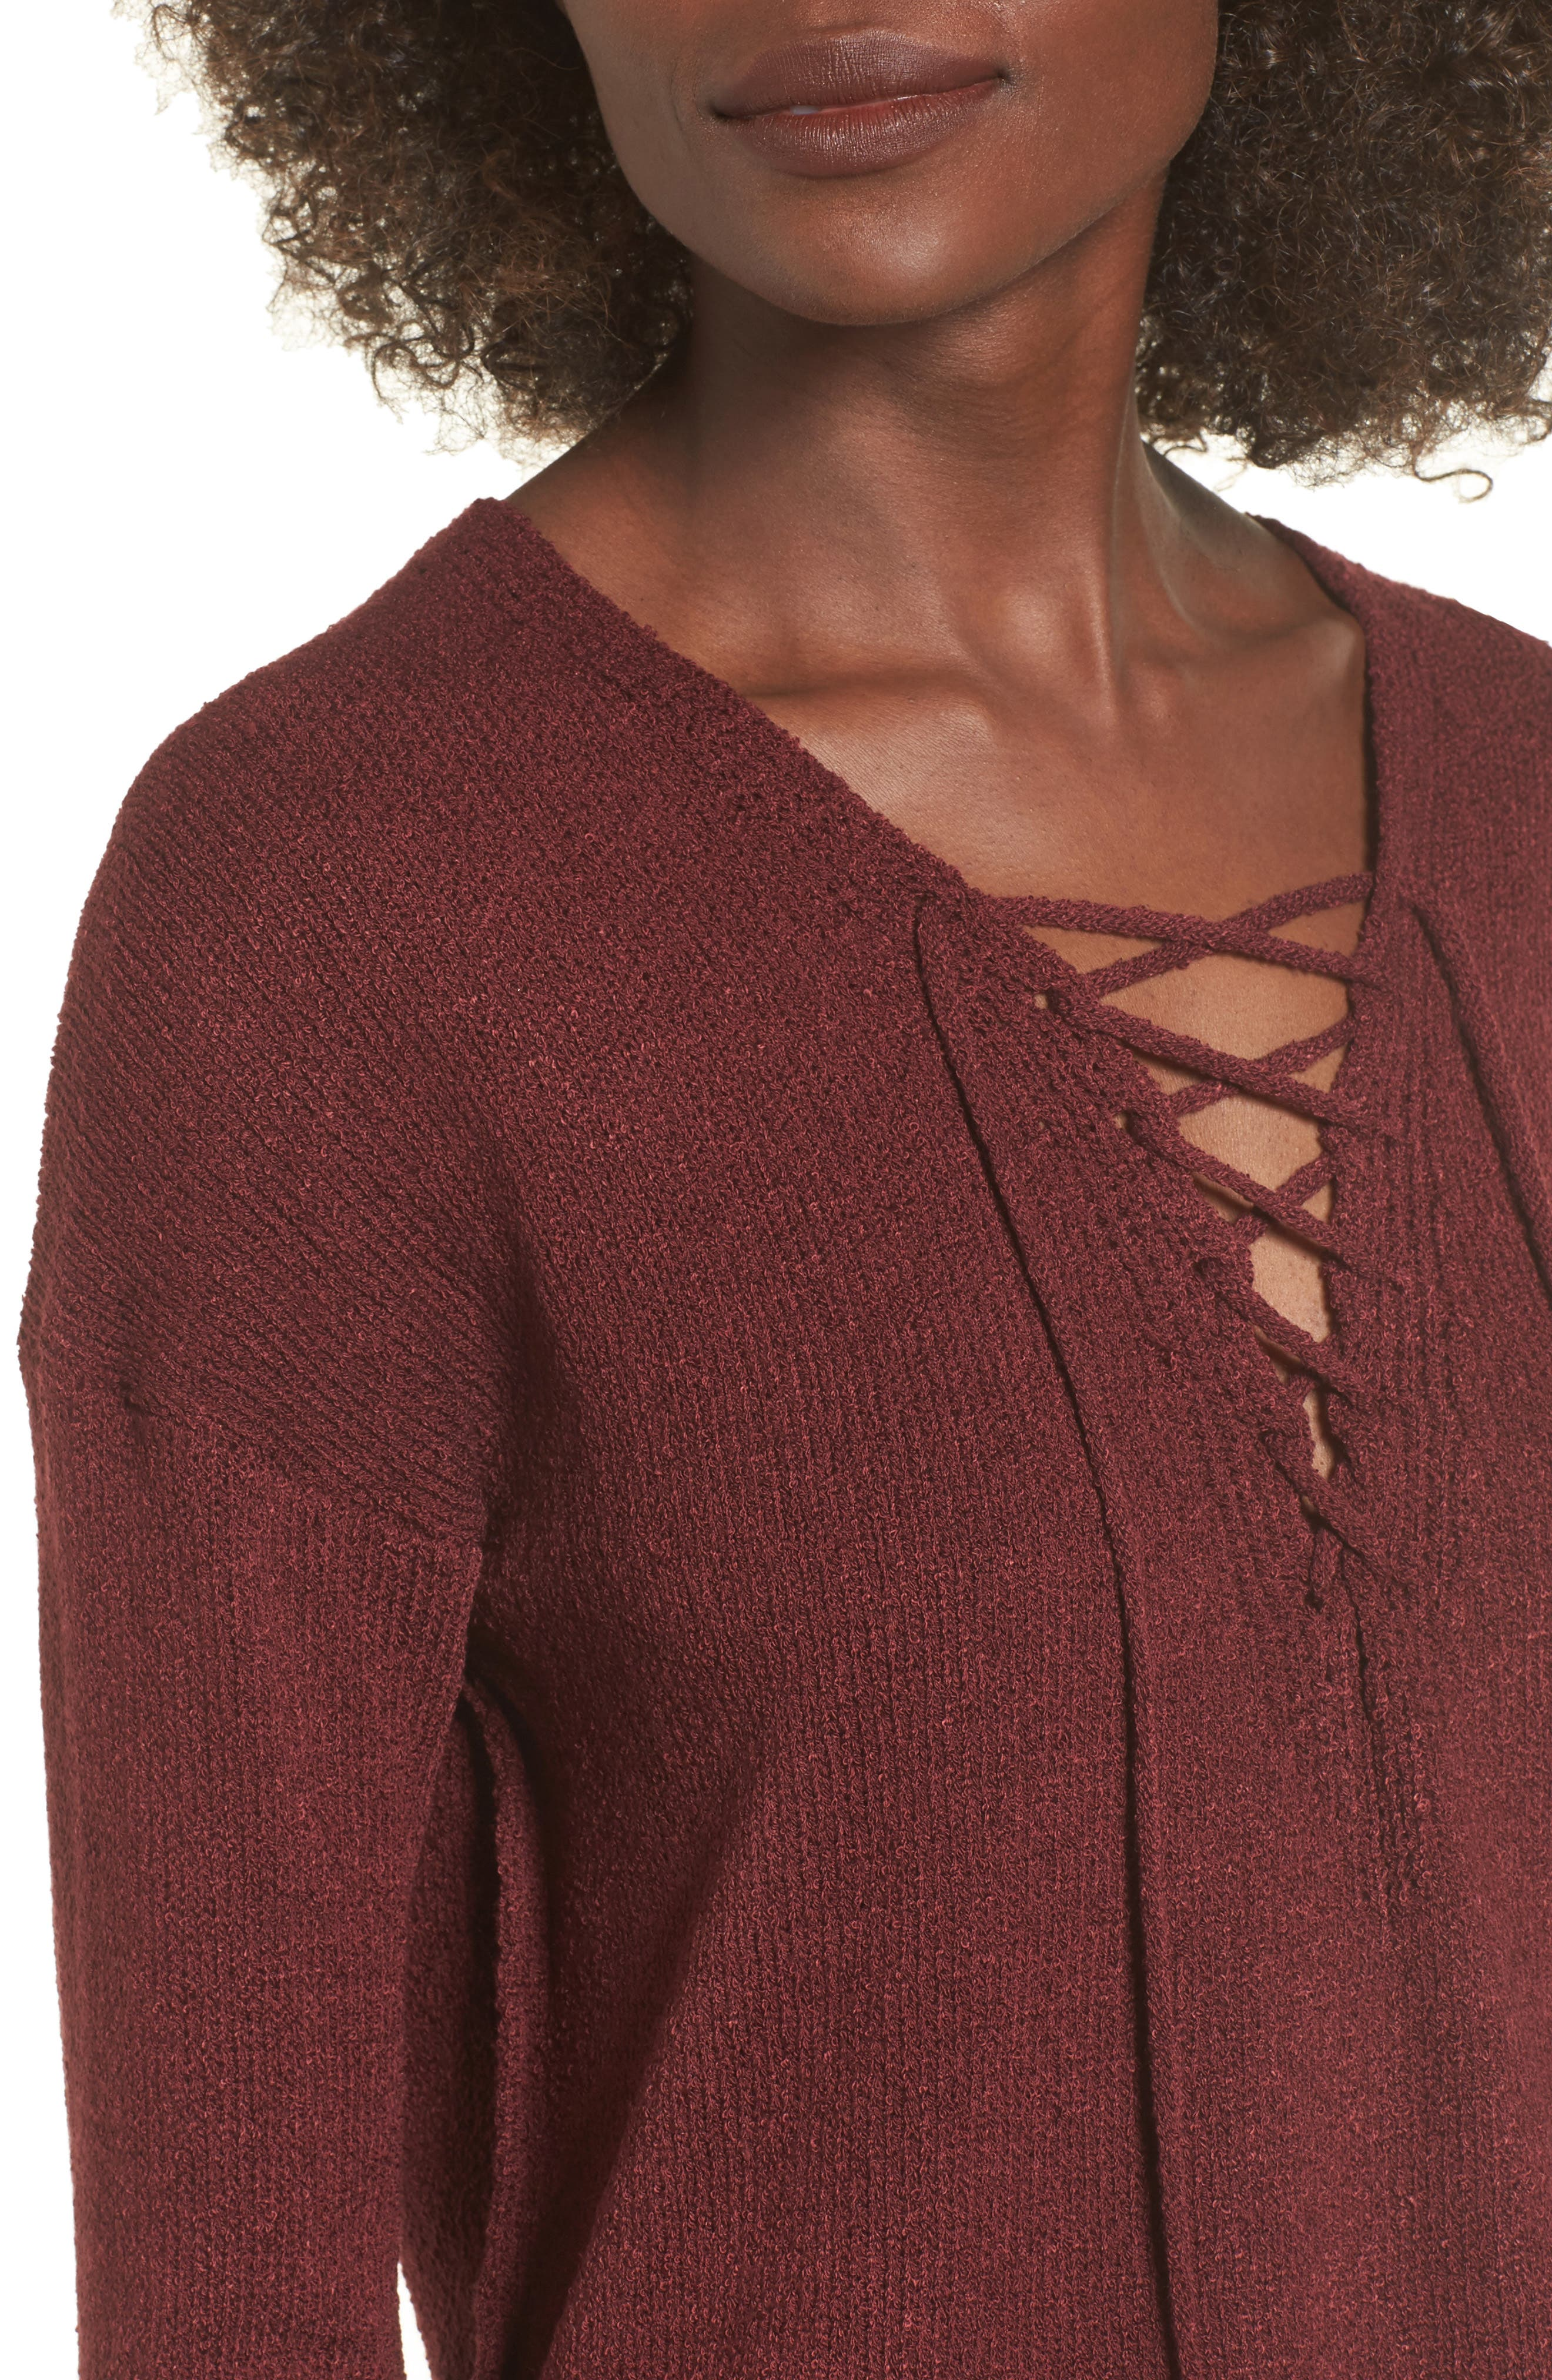 ASTR Lace-Up Sweater,                             Alternate thumbnail 4, color,                             930